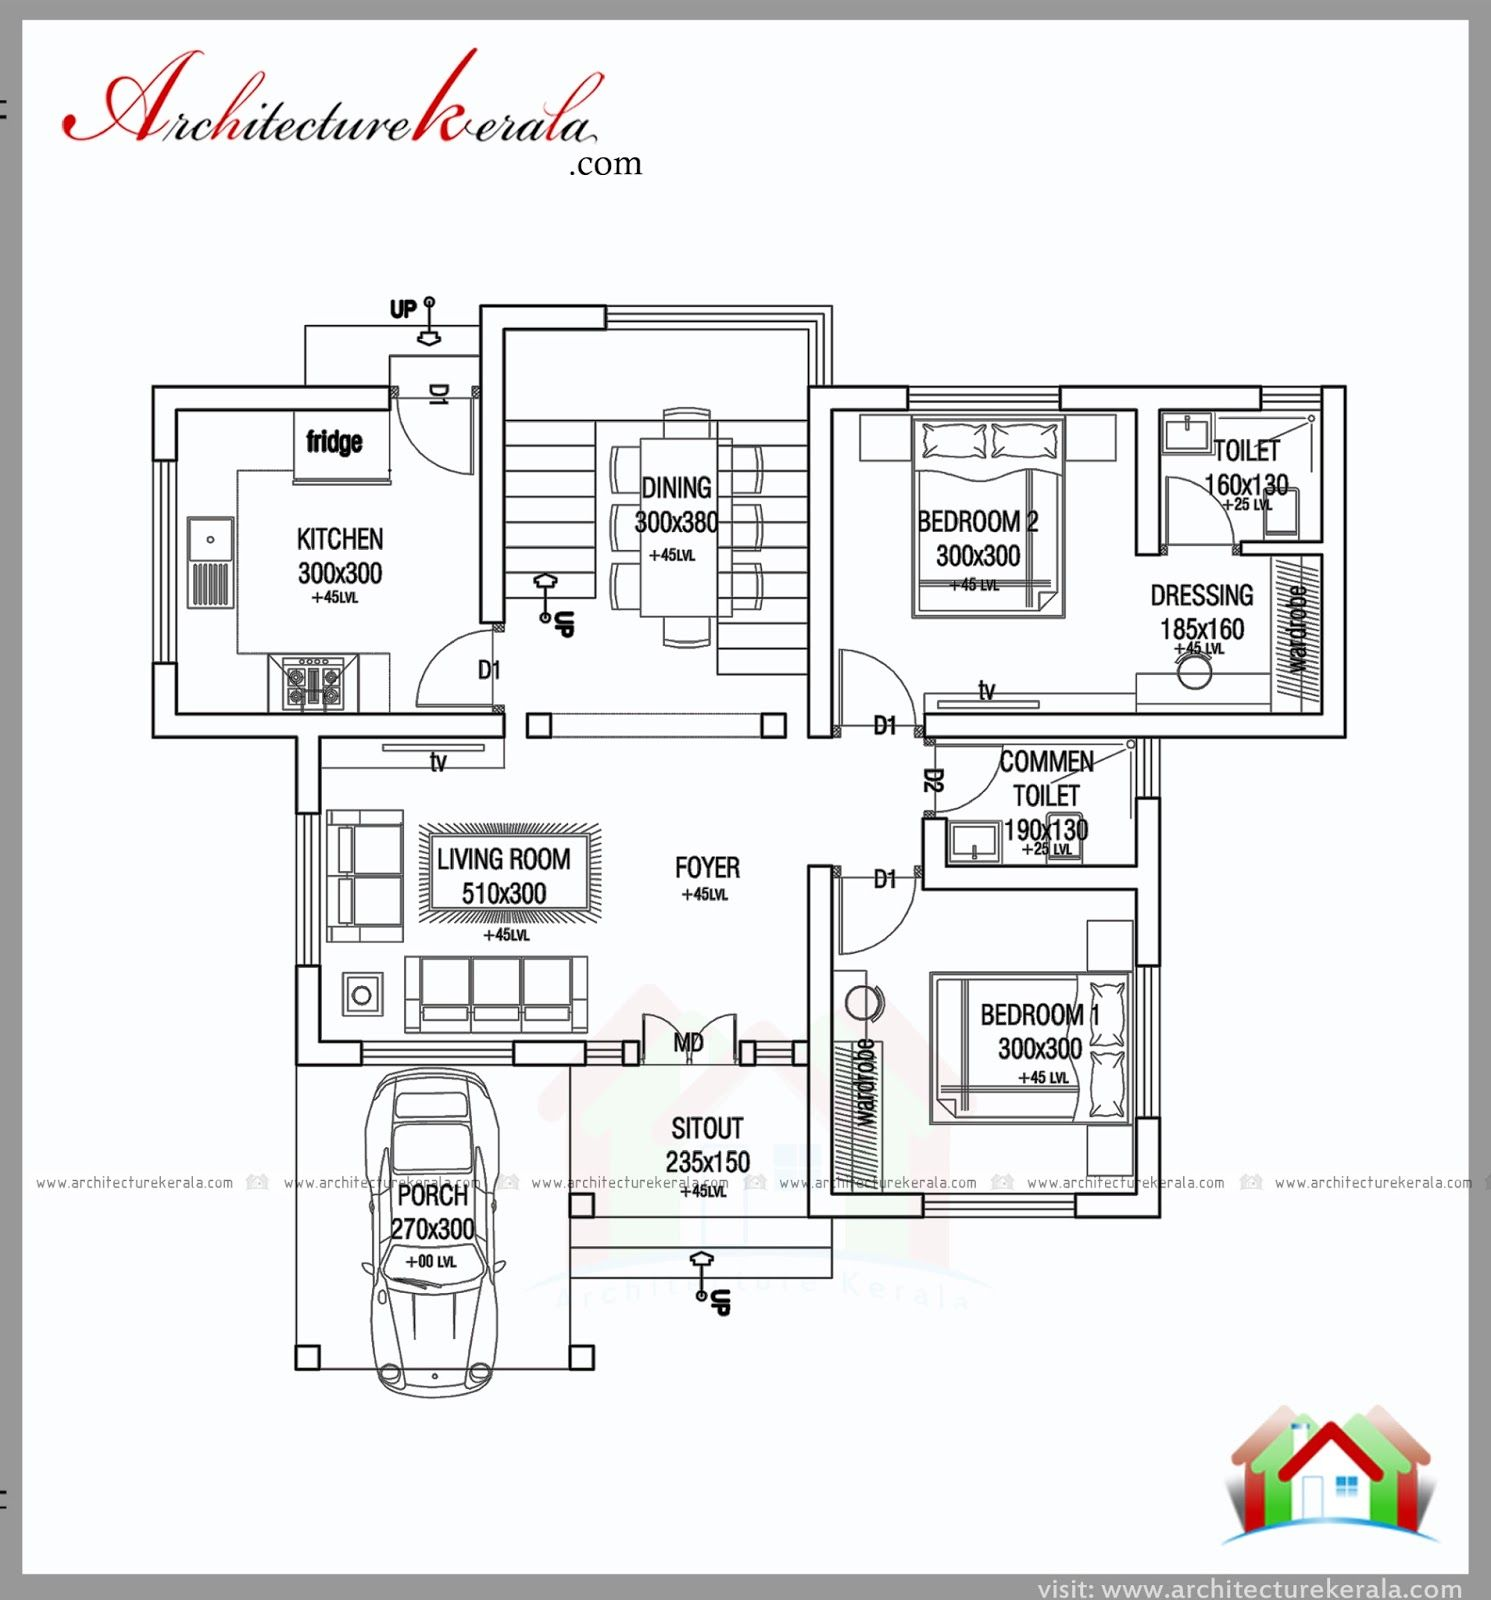 1000 Square Feet 2 Bed House Plan And Elevation Architecture Kerala One Bedroom House Plans Small Modern House Plans One Bedroom House